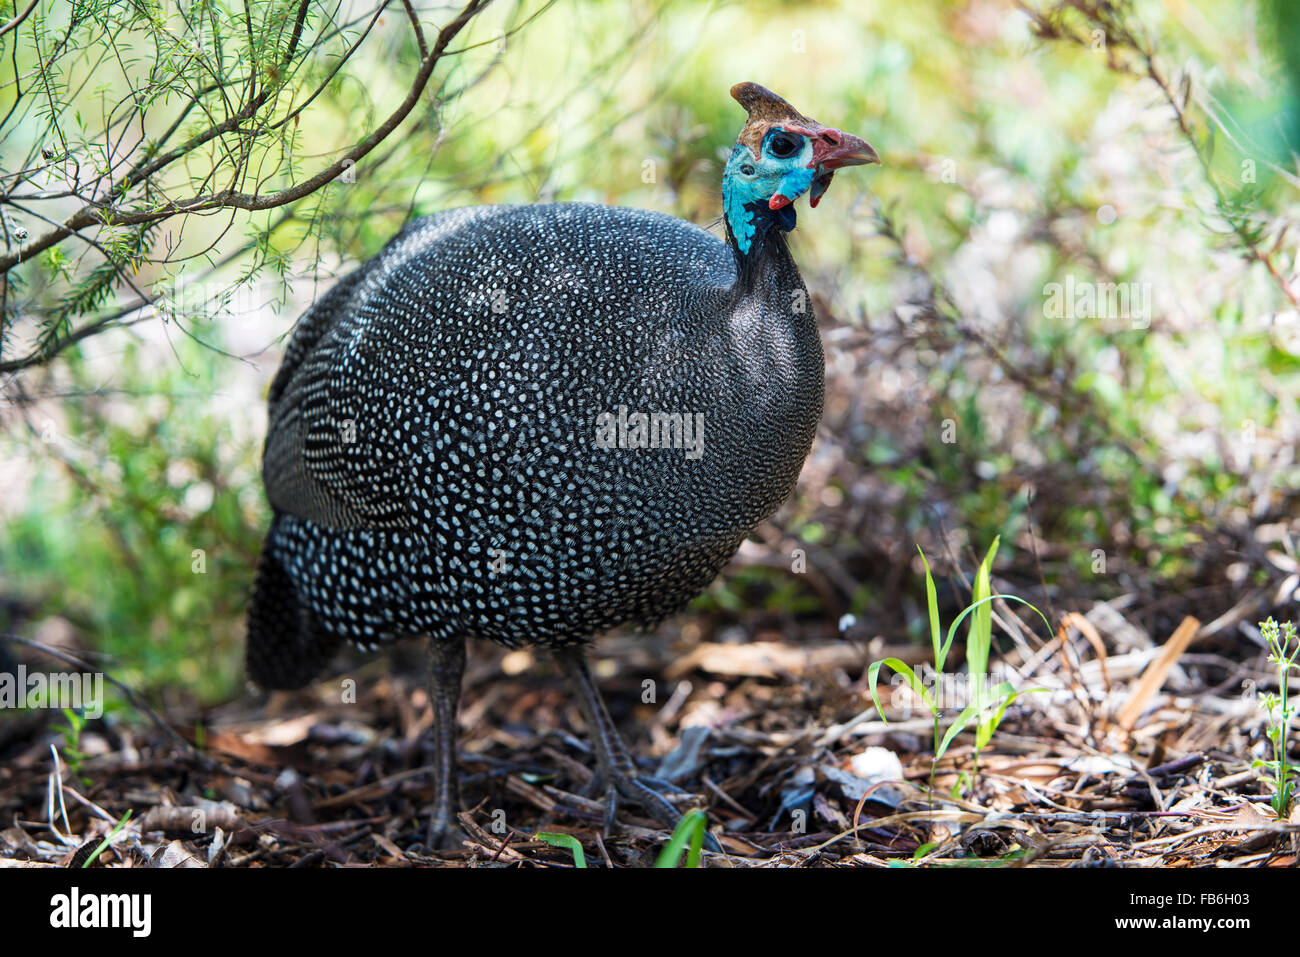 An African helmeted guinea fowl in Kirstenbosch Botanical Gardens, Cape Town - Stock Image